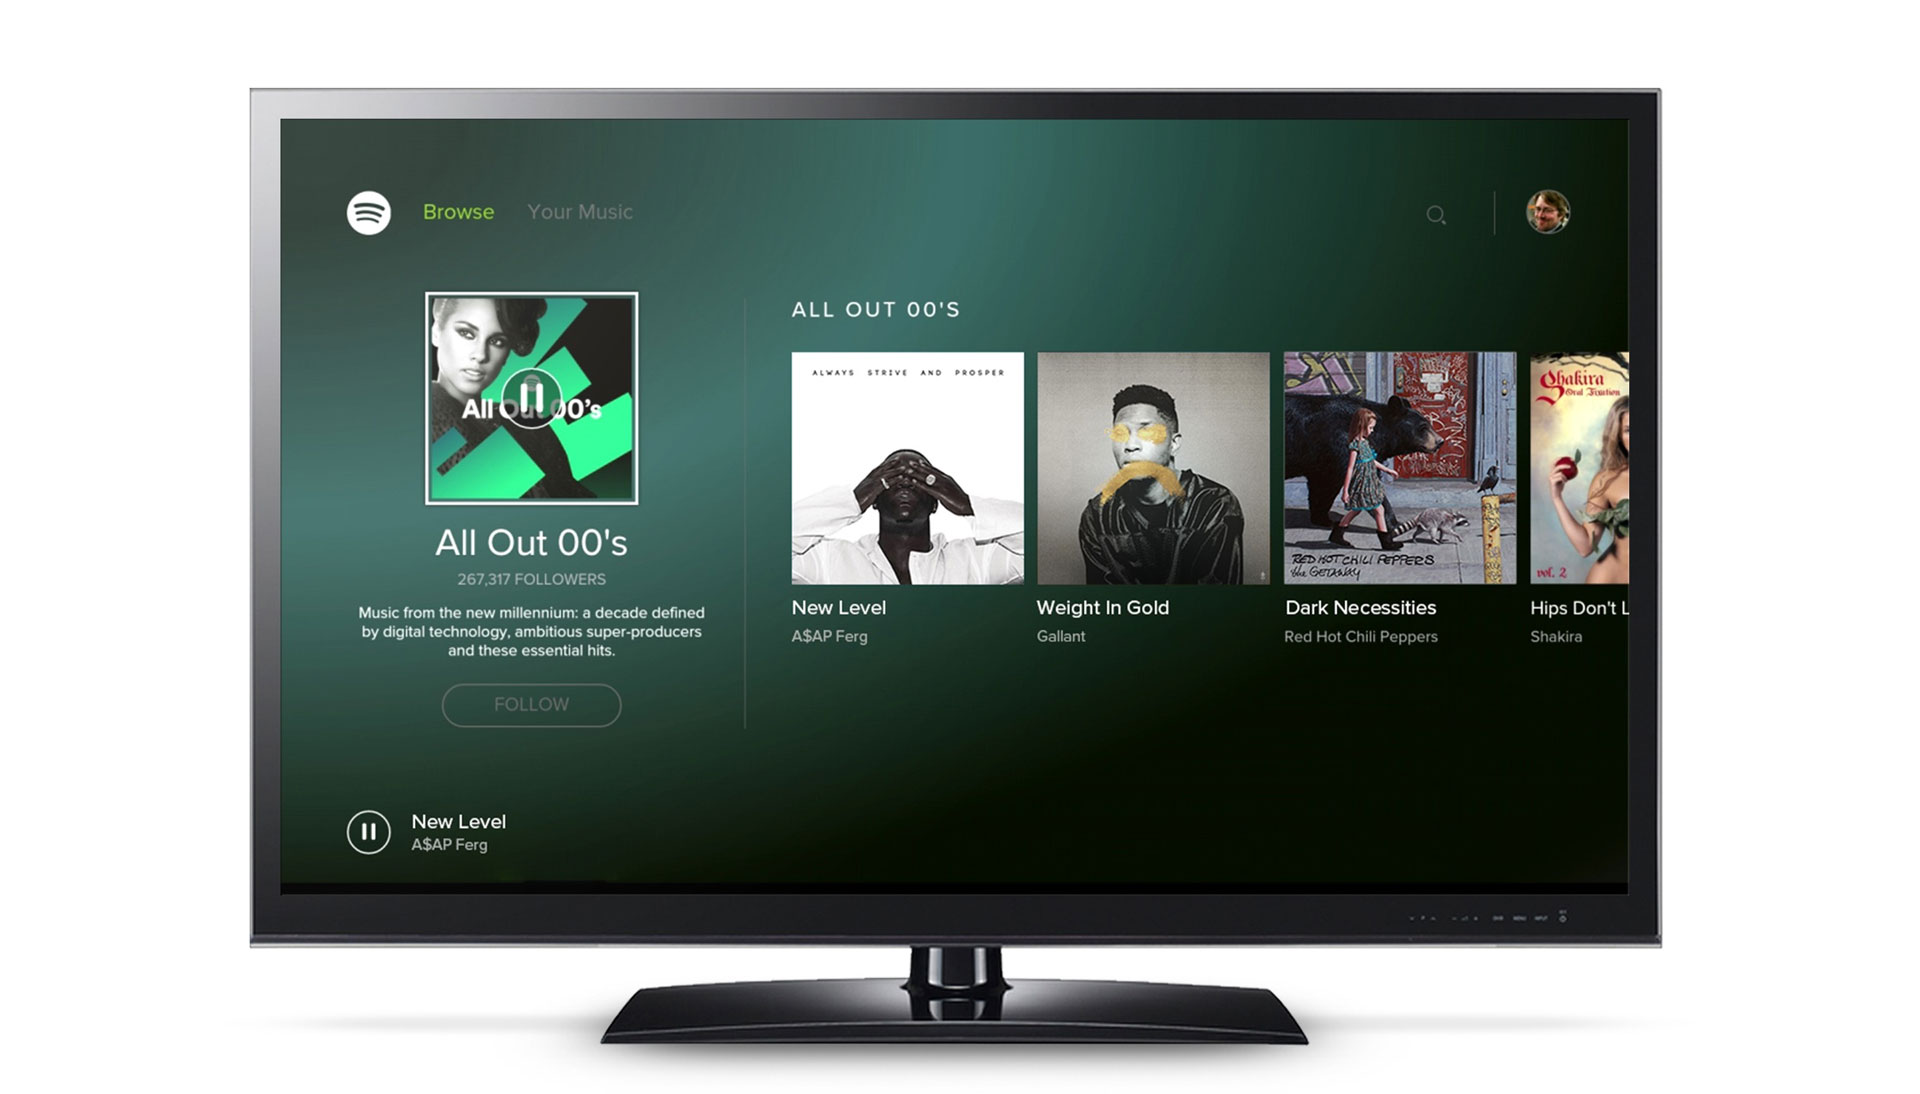 Spotify op Android TV